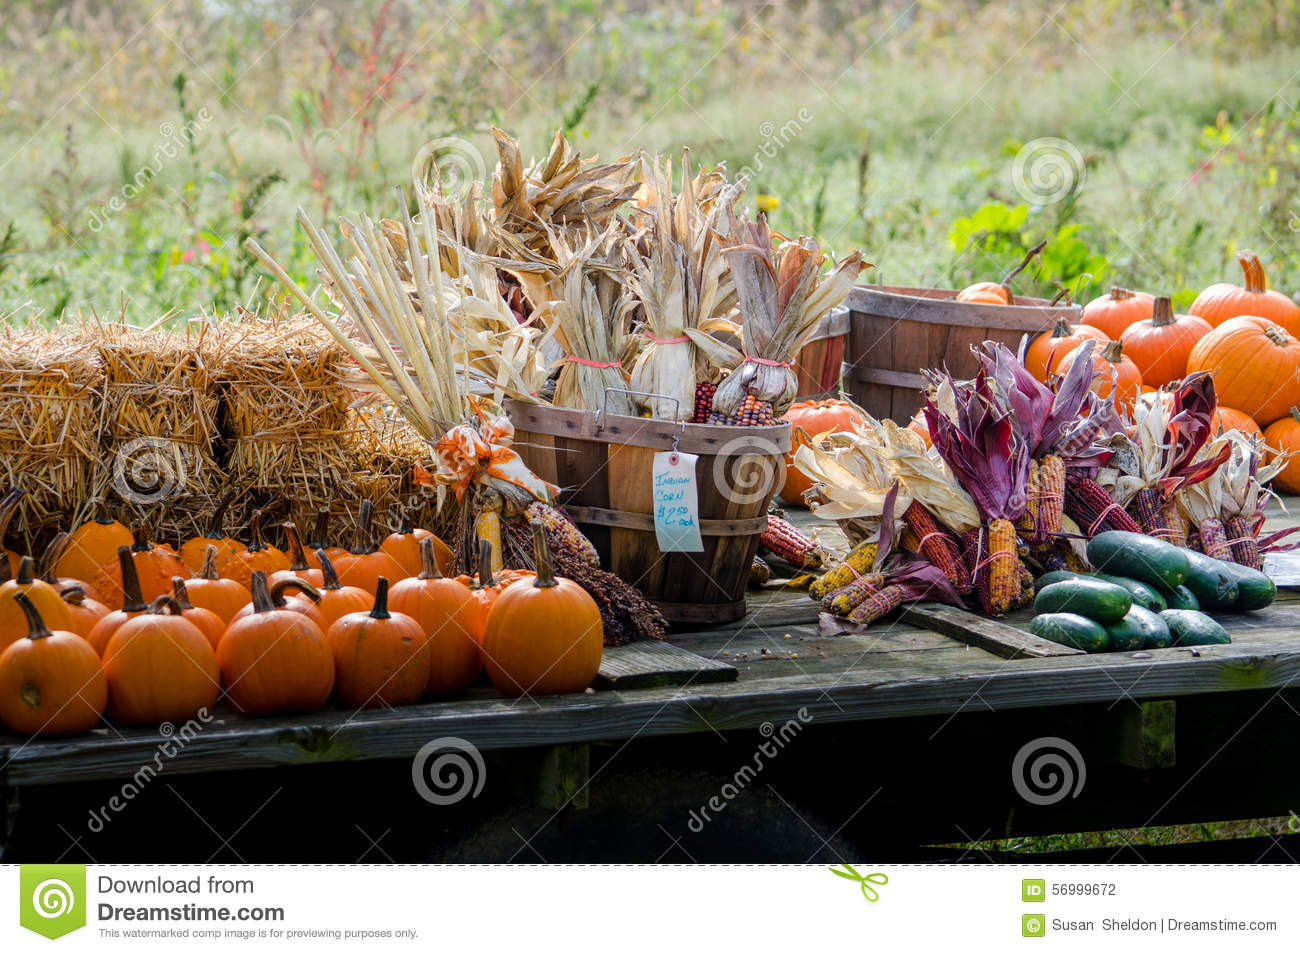 Beautiful fall harvest is for sale for decorating fun indian corn